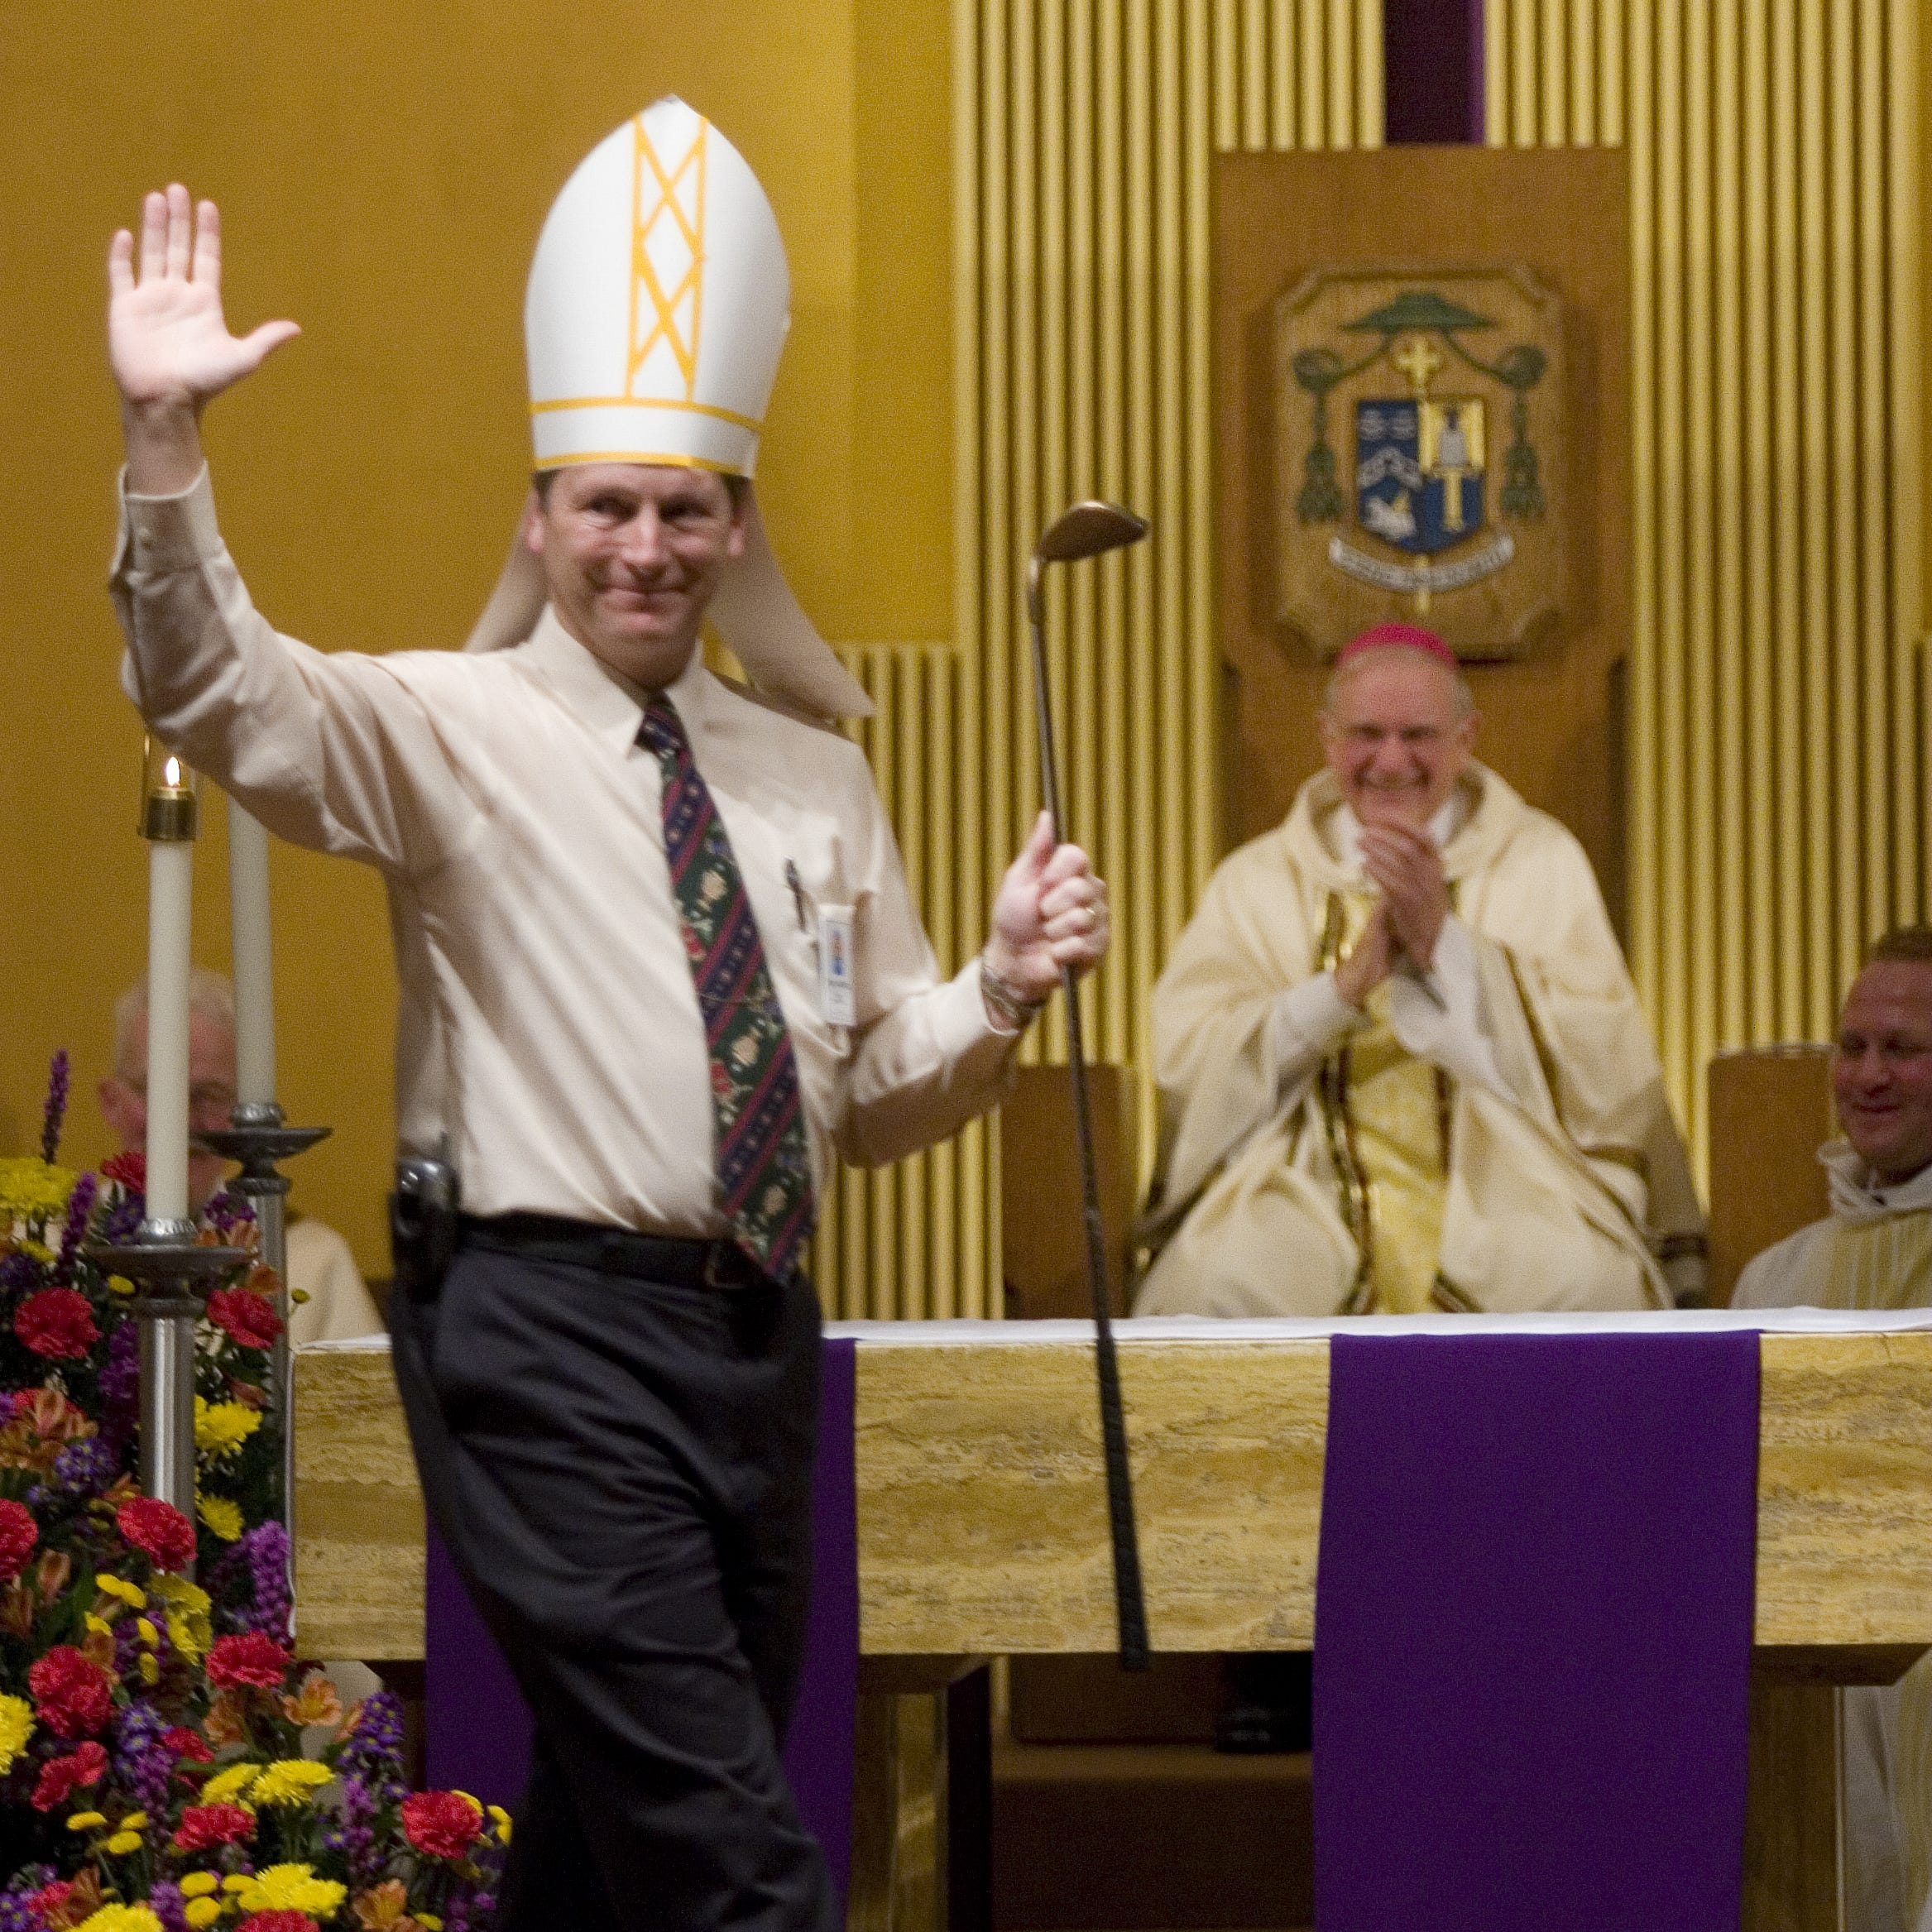 Lawsuit claims Springfield Catholic diocese knew a top official was sexually abusing woman